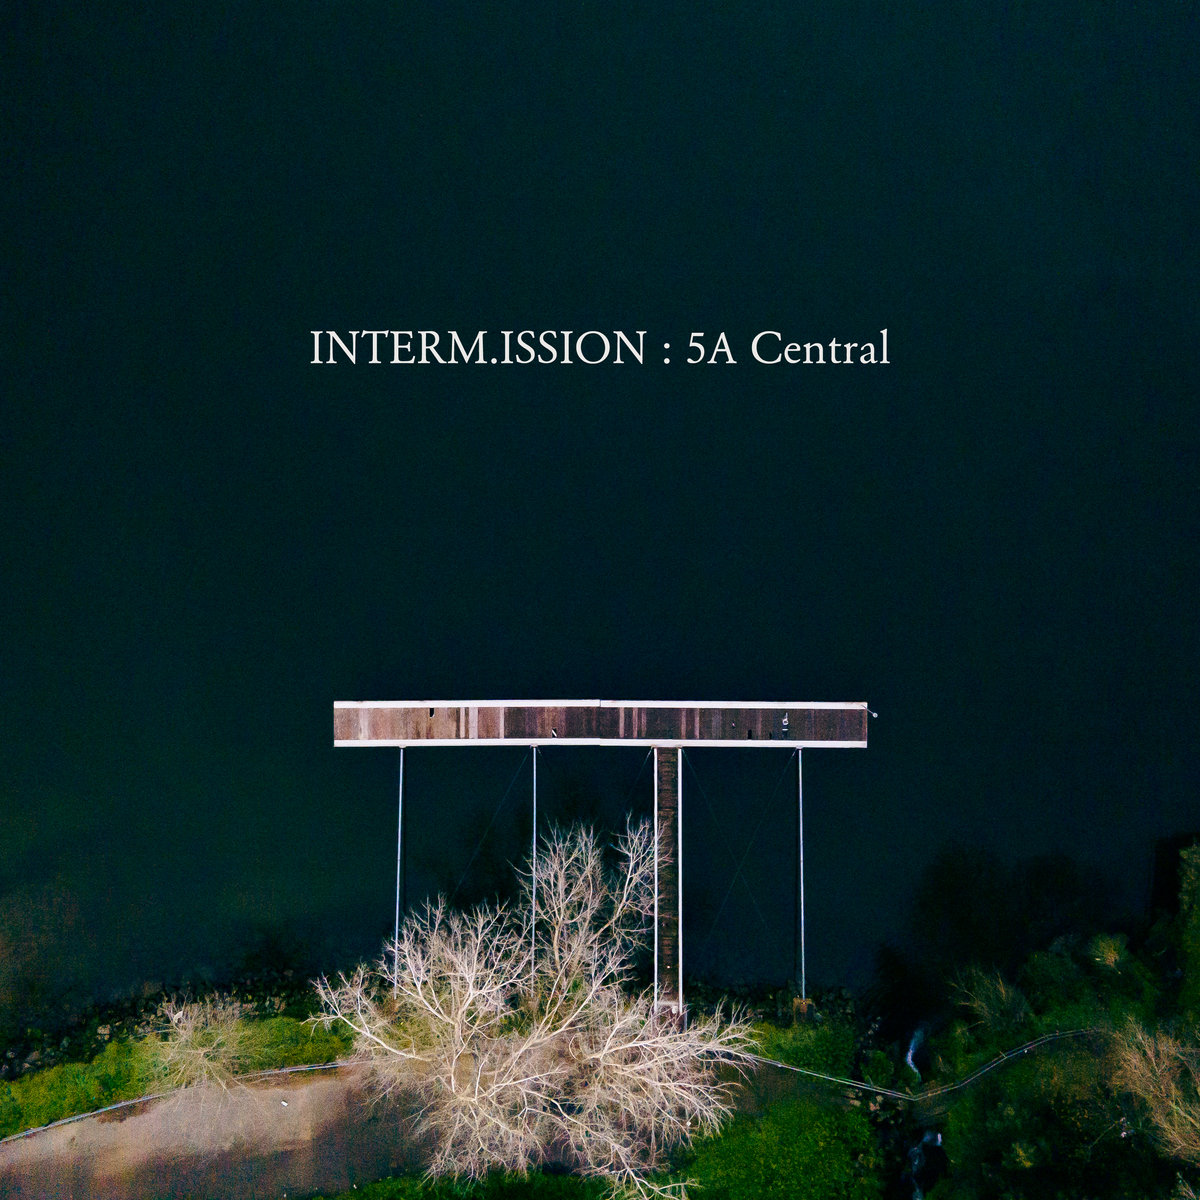 INTERM.ISSION – 5A Central